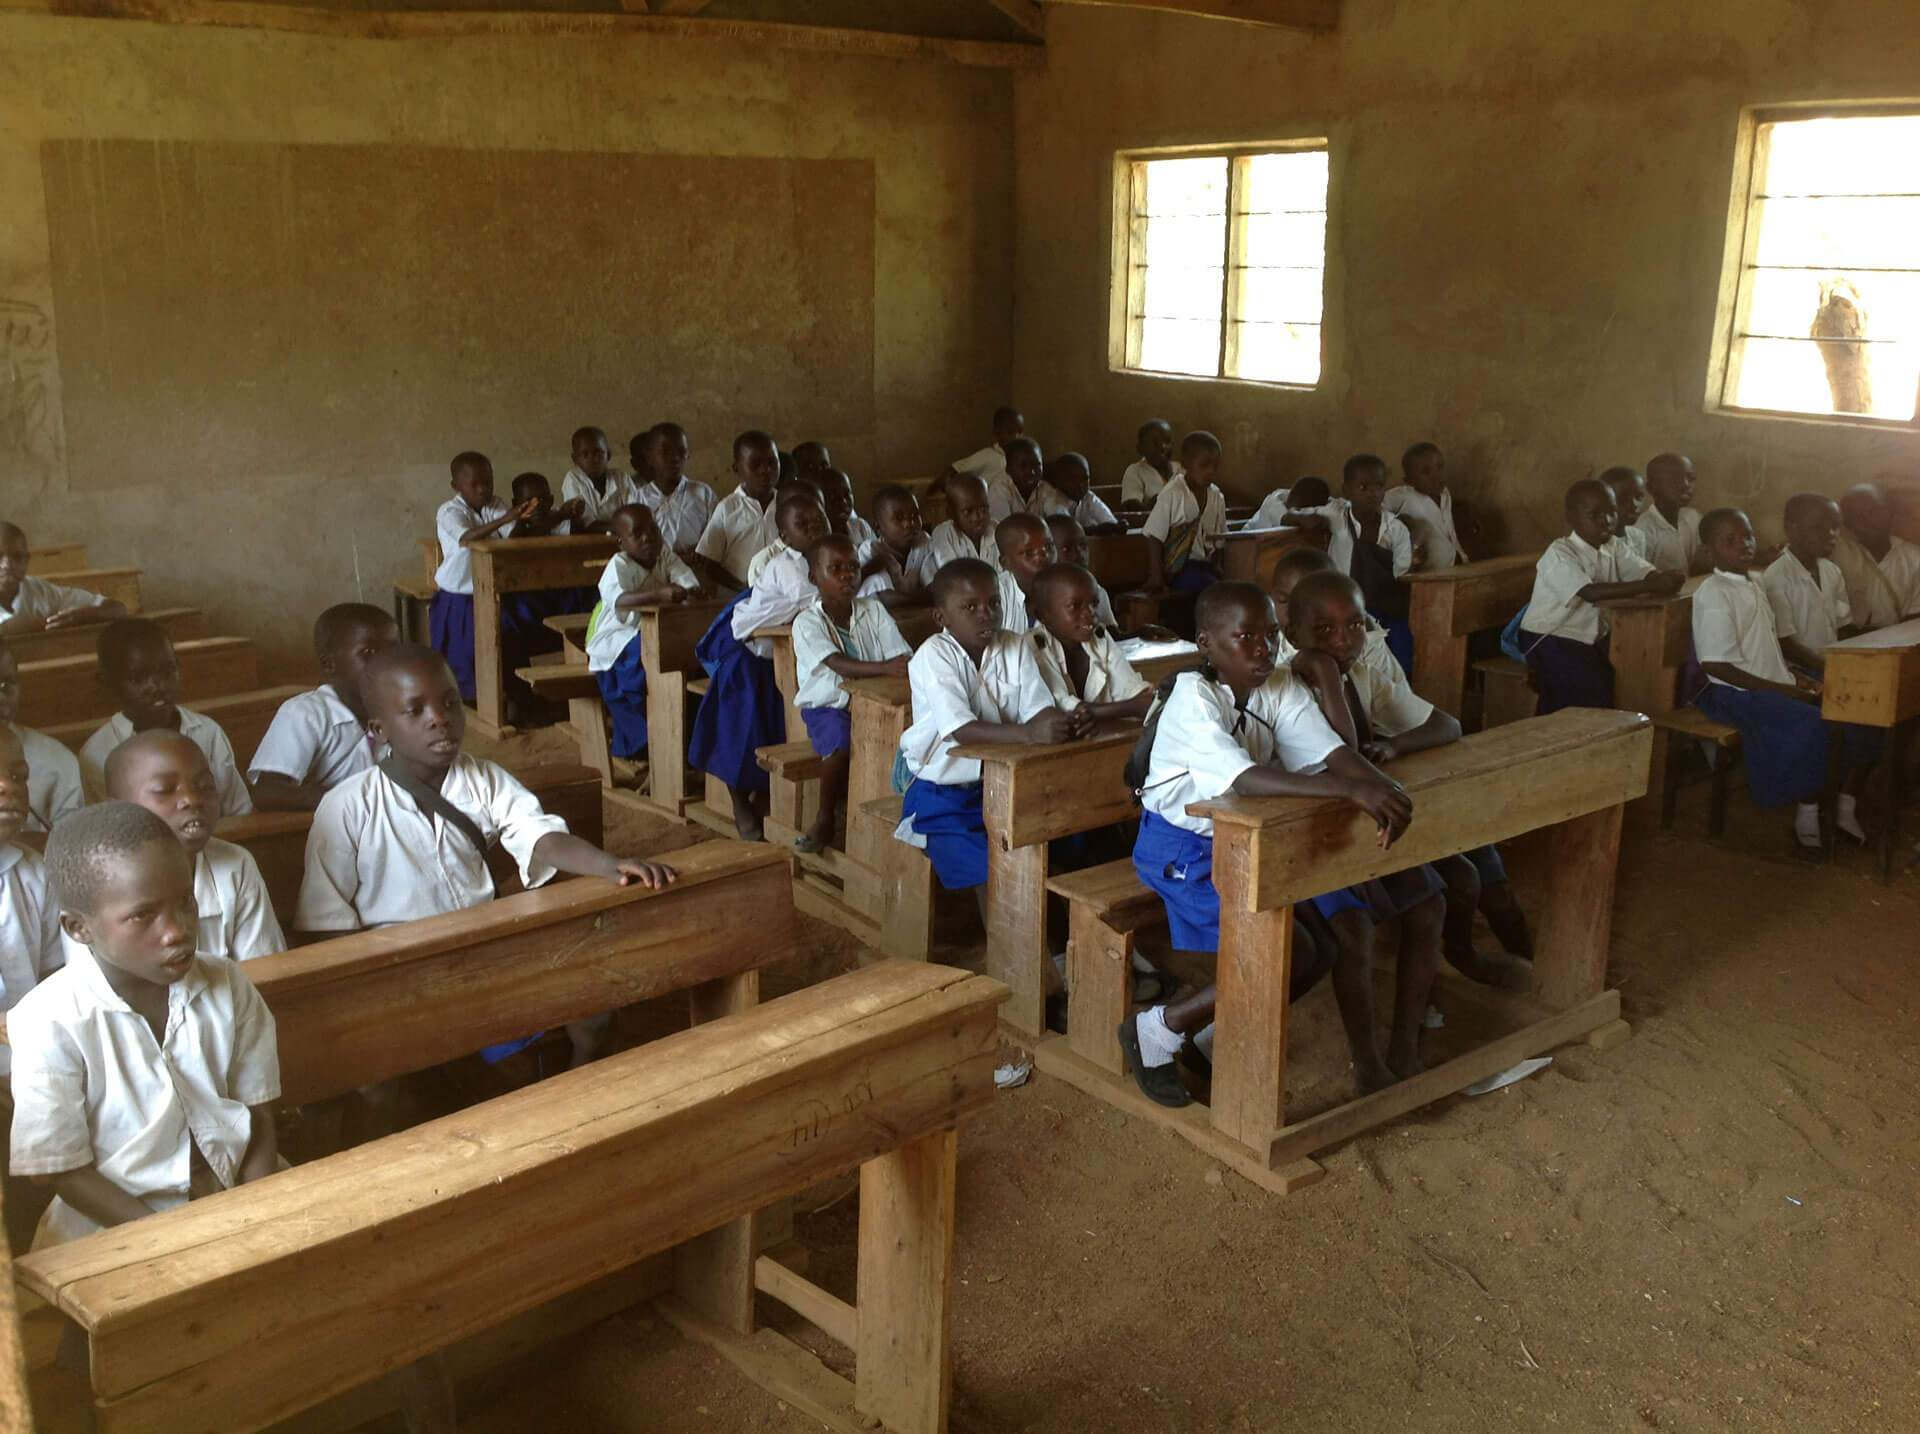 Photo of children in a classroom setting